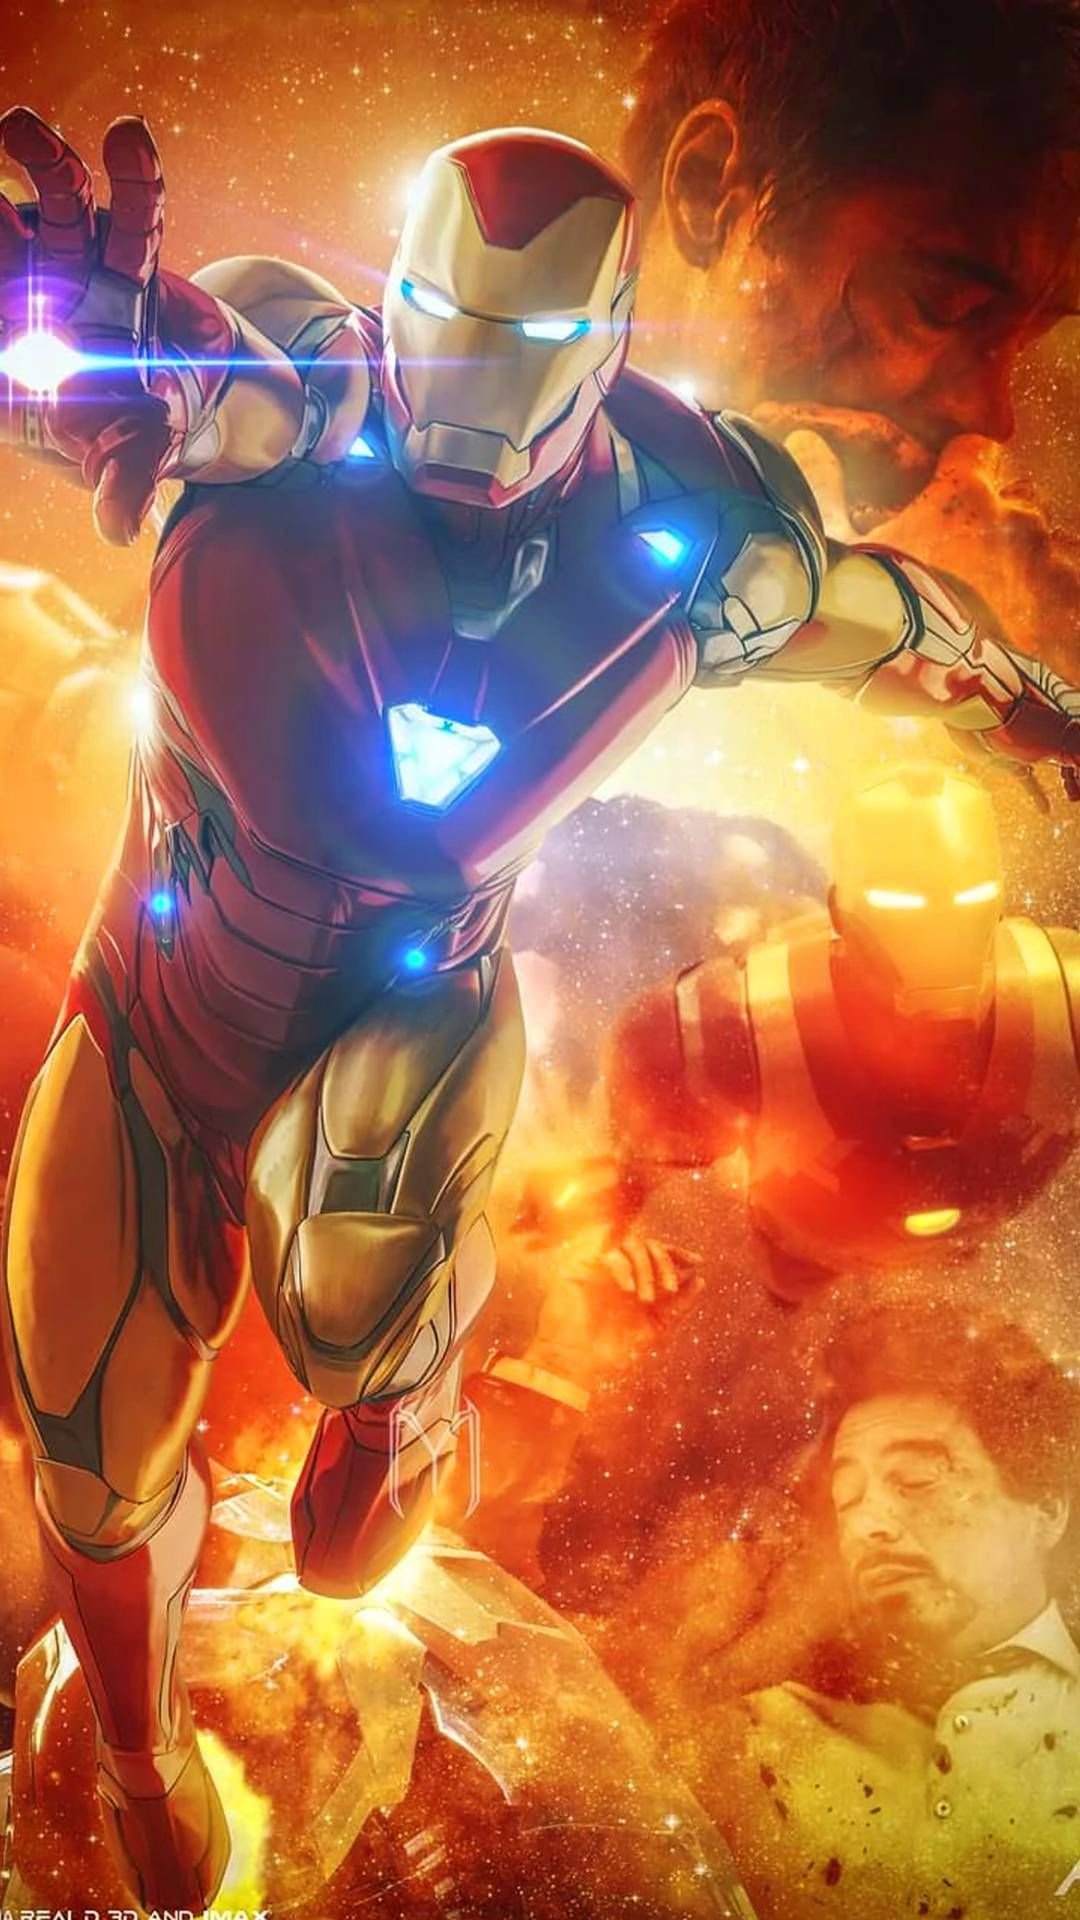 The Iron Man Endgame Fate Concludes After A 10 Year Journey Iron Man Avengers Marvel Comics Wallpaper Iron Man Art